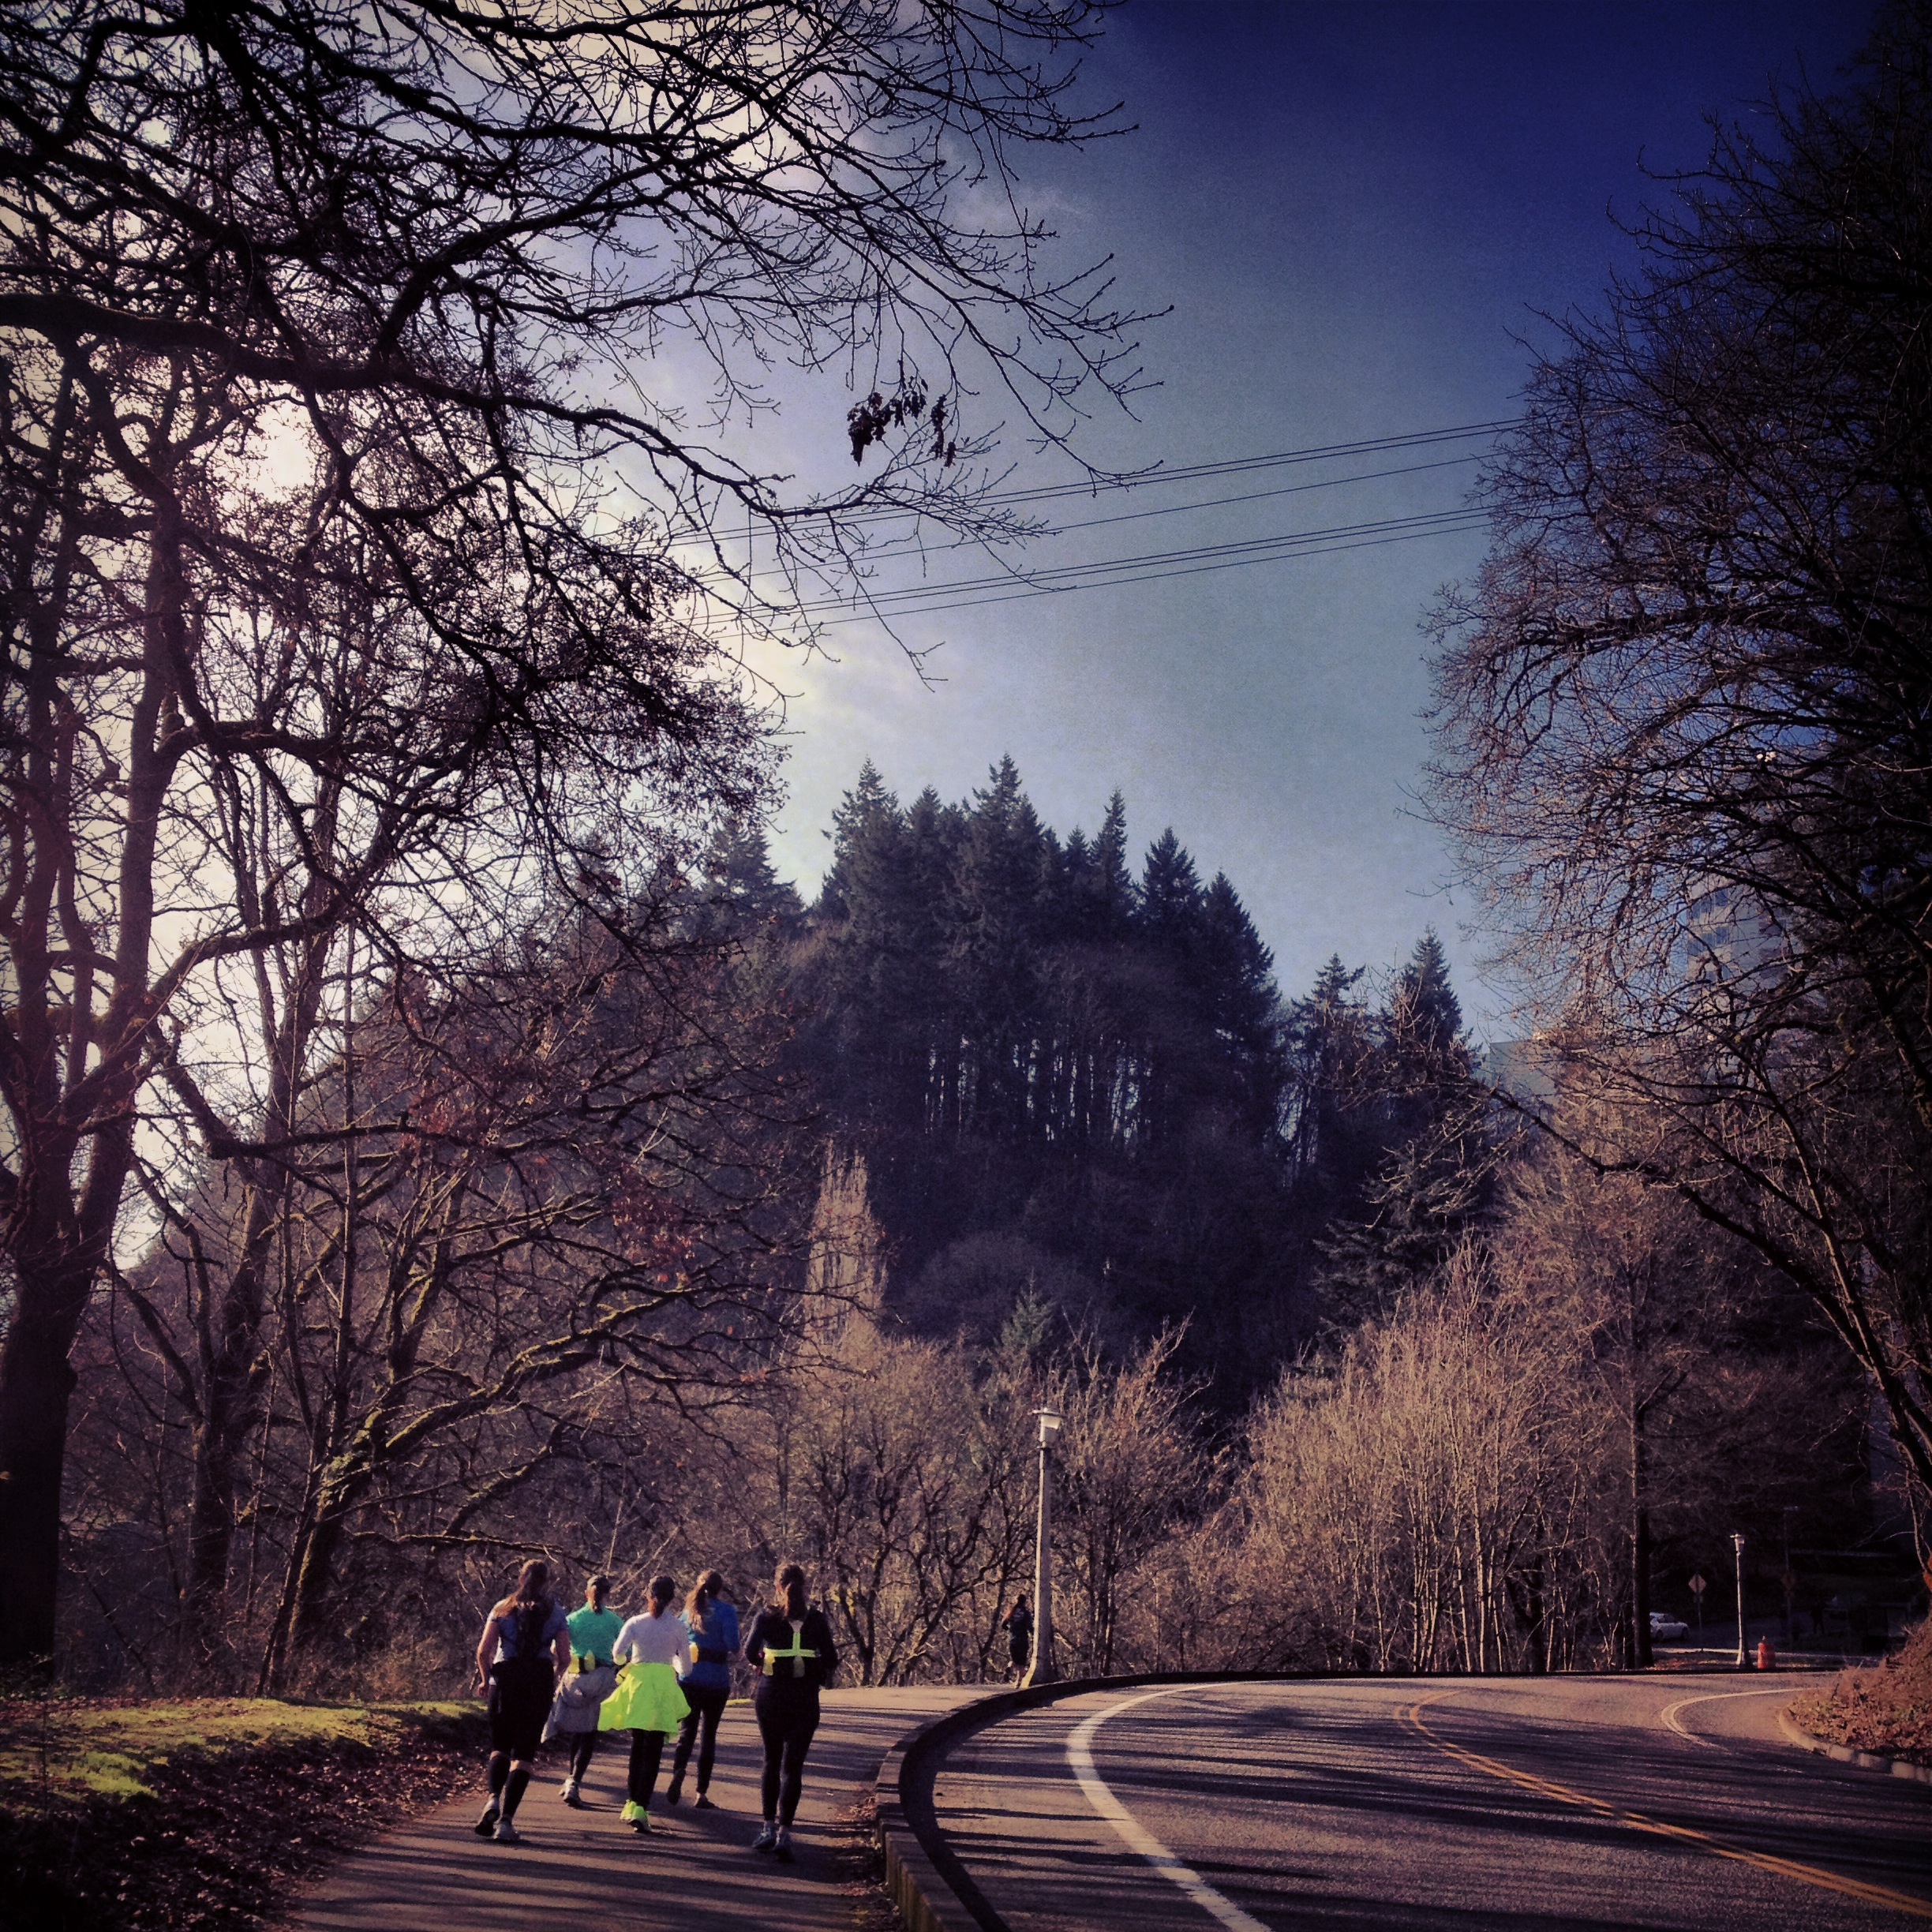 Climbing up Terwilliger with the ladies. Great Sunshine!